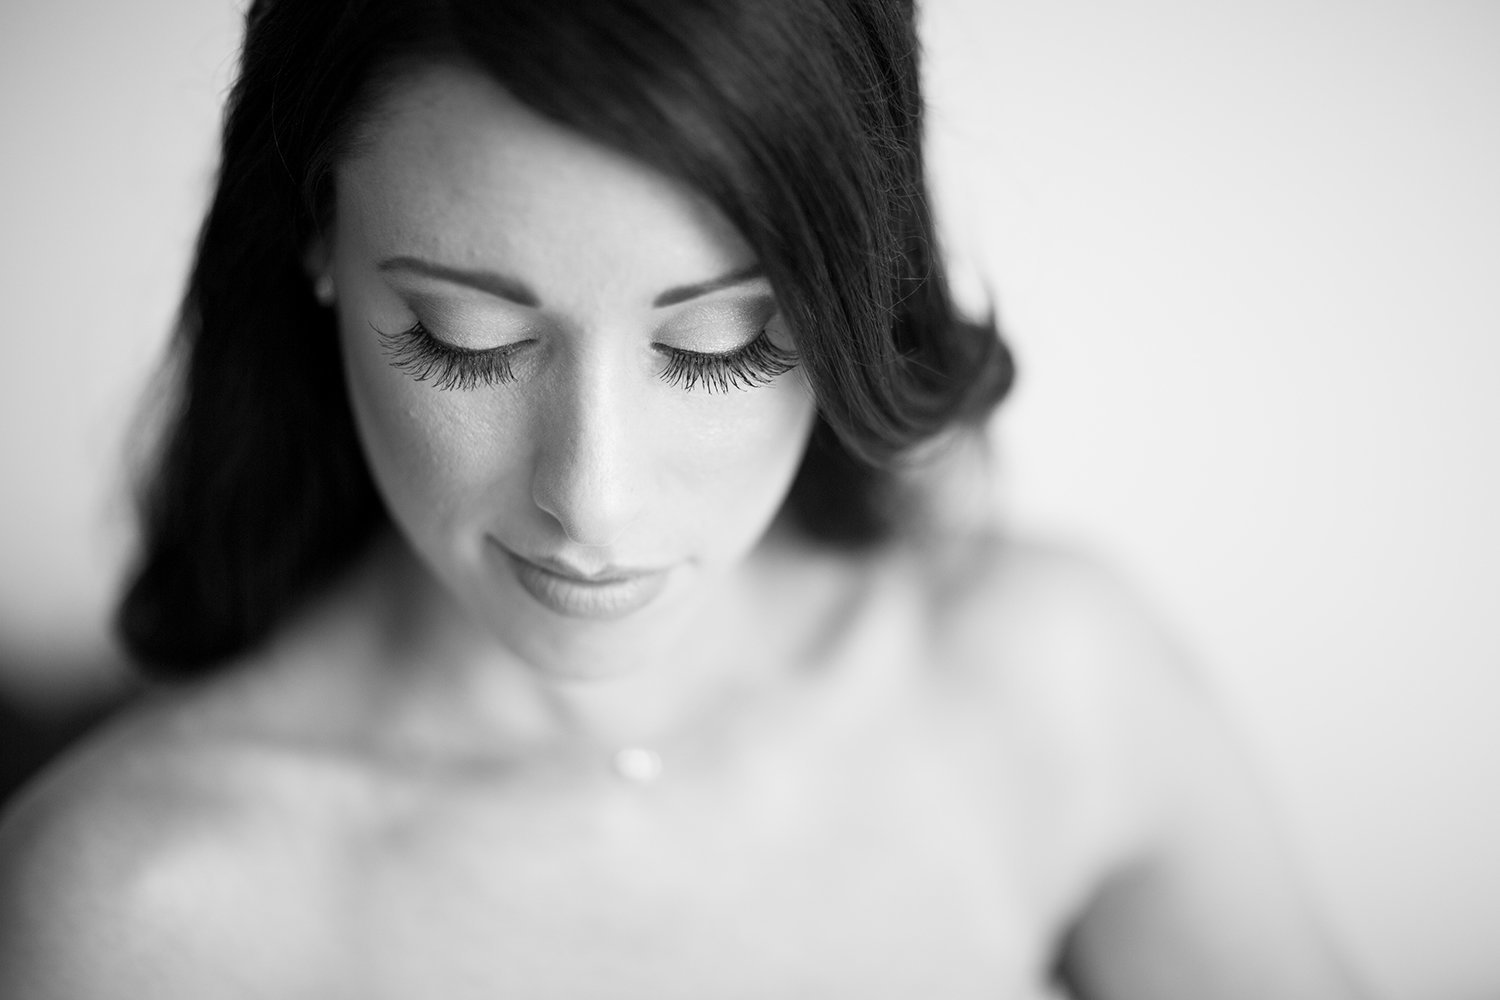 High key high contrast black and white portrait of a beautiful bride